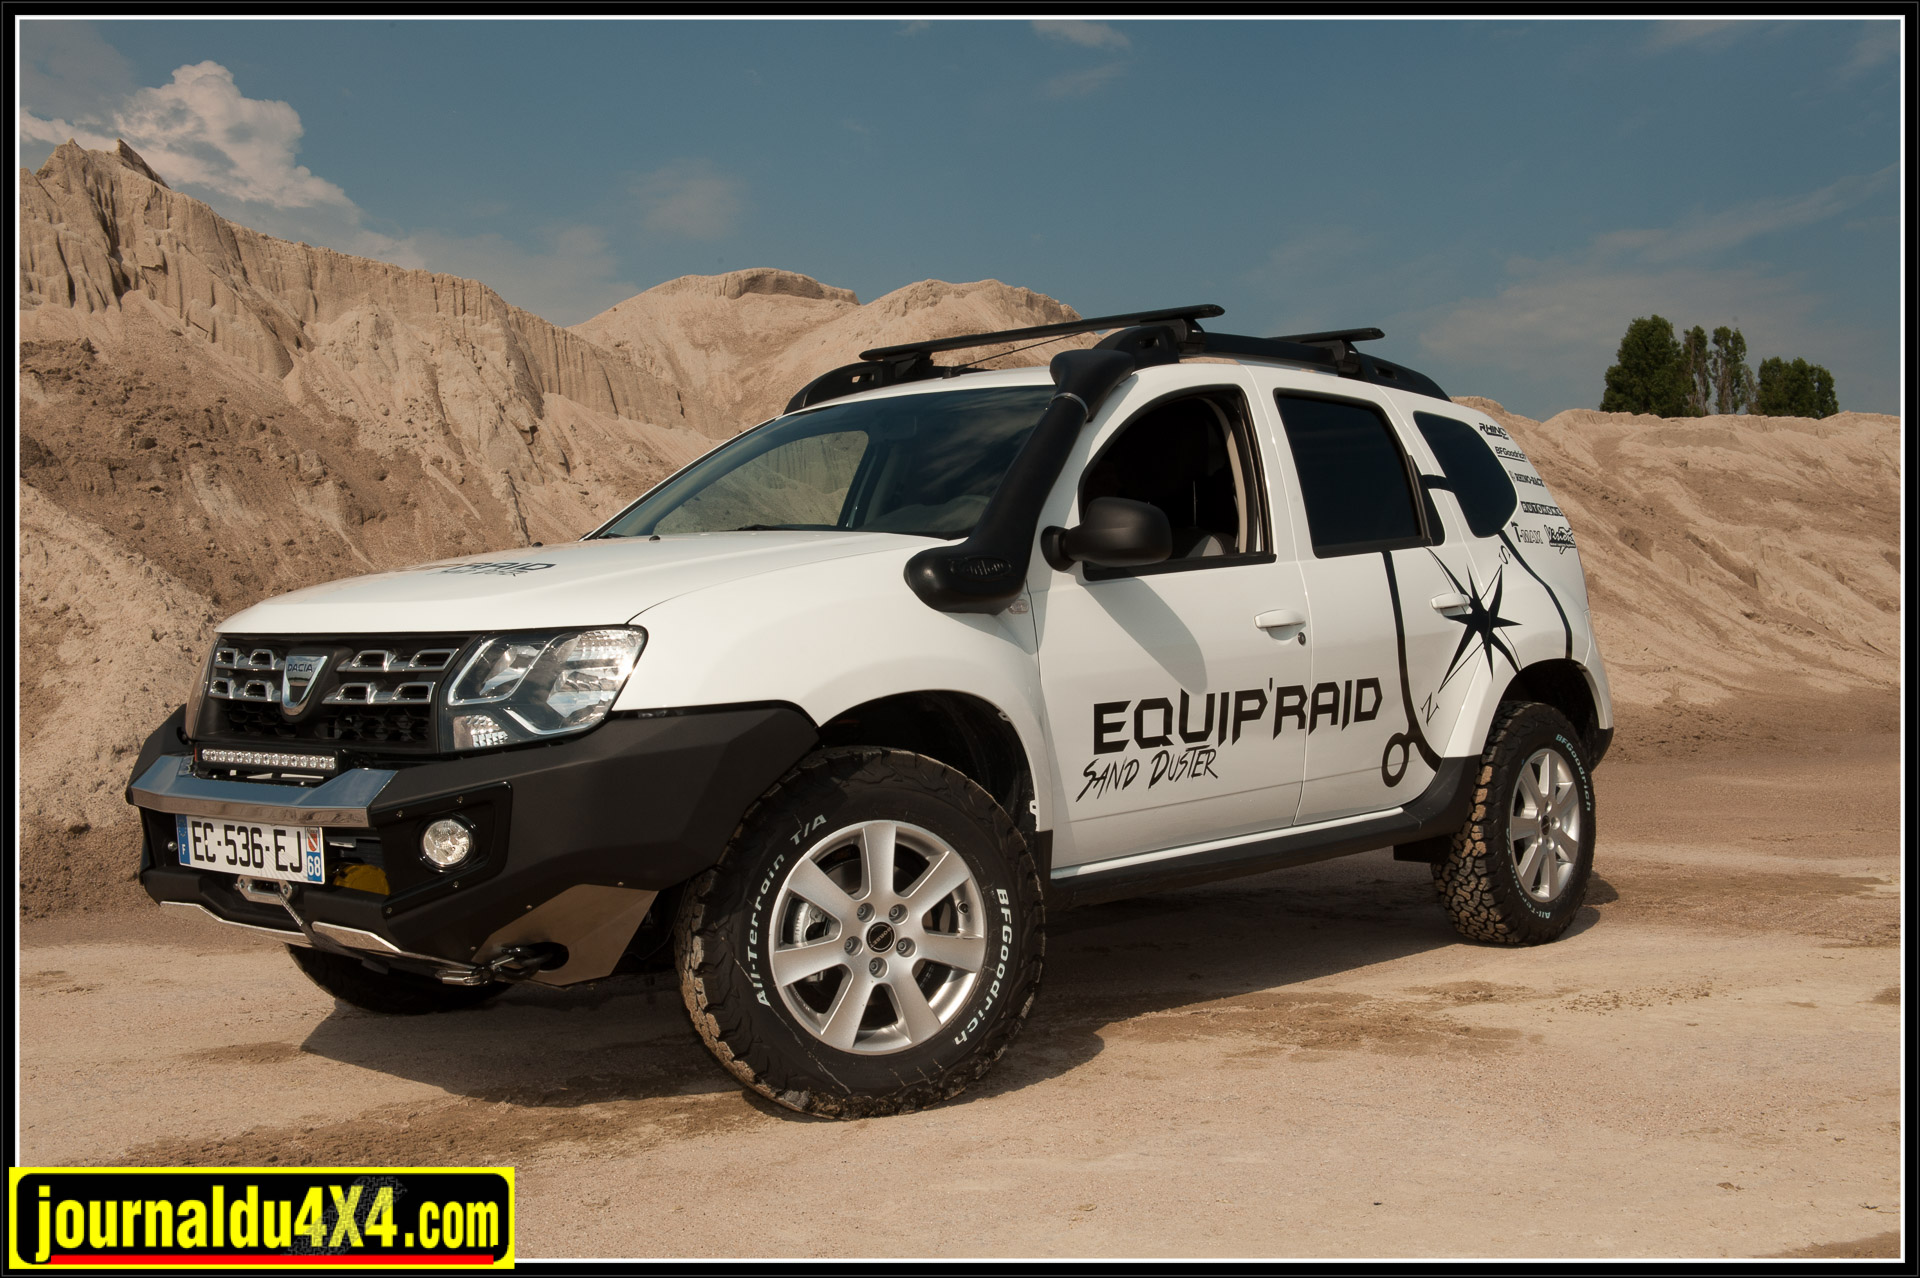 sand duster d equip raid magazine 4x4 suv. Black Bedroom Furniture Sets. Home Design Ideas